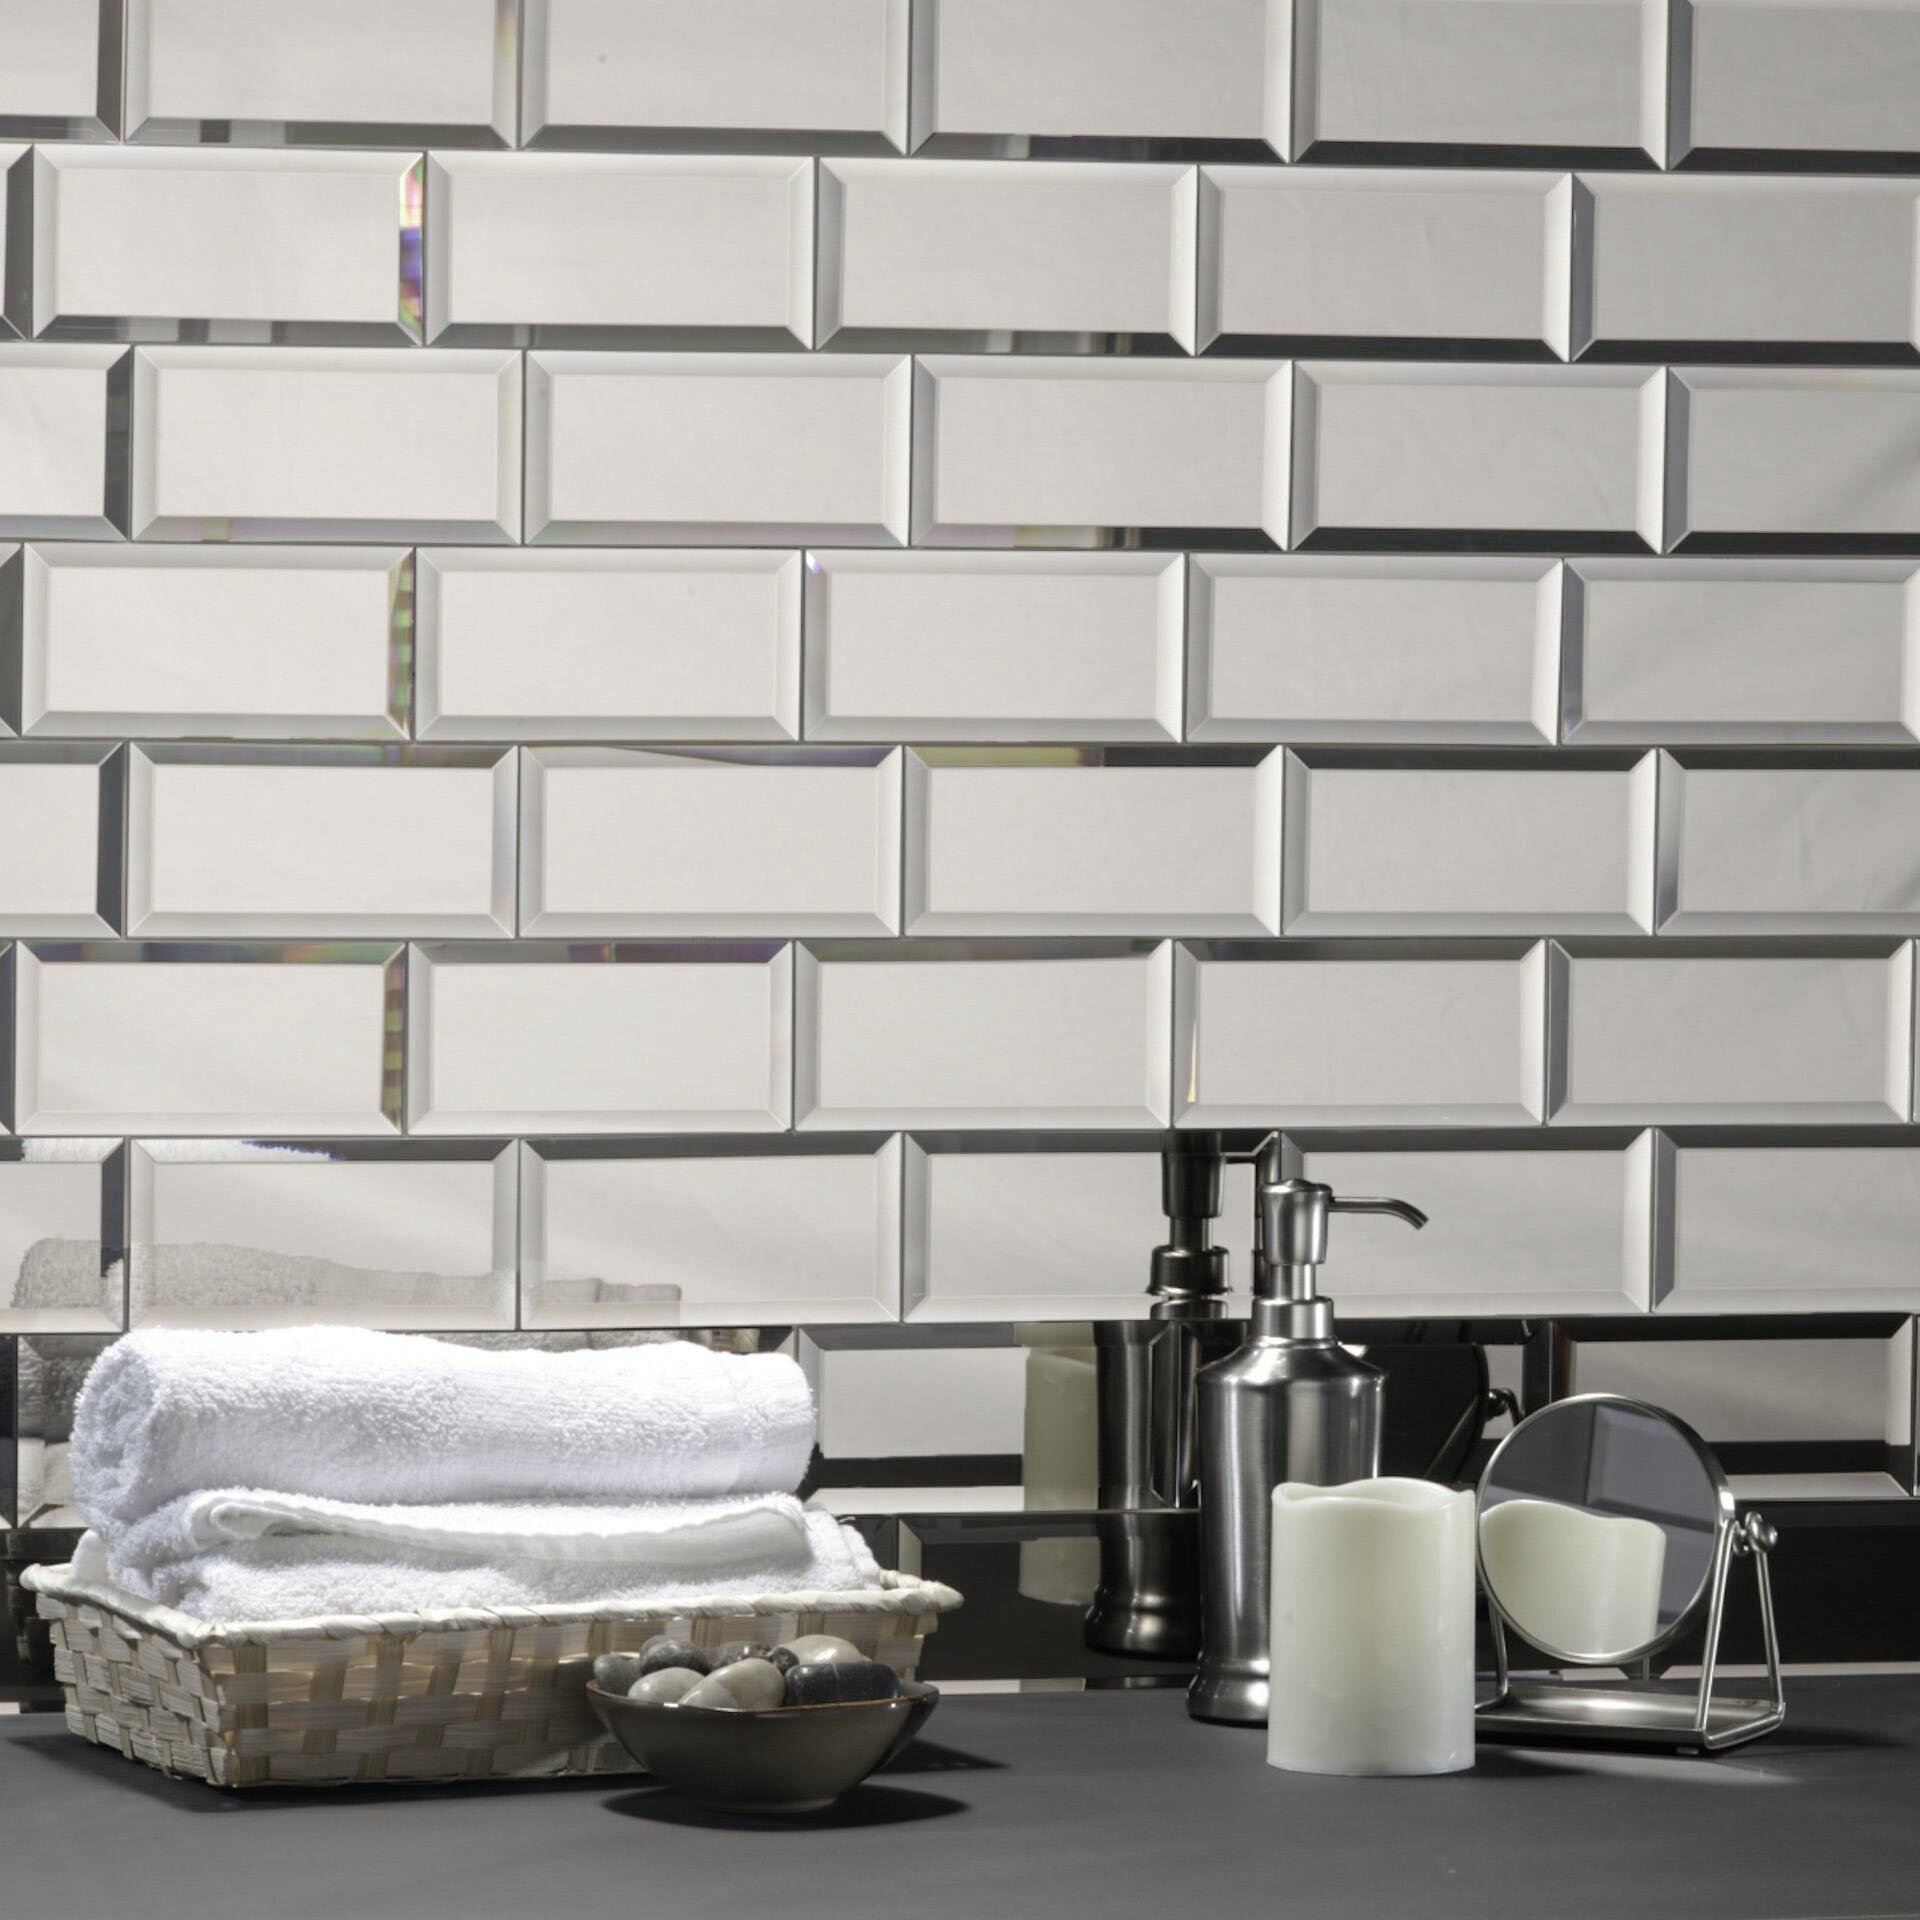 Echo Mirror Tiles Naturally Enlarge Your Home Or Office. Due To The Tileu0027s  Reflective Mirror